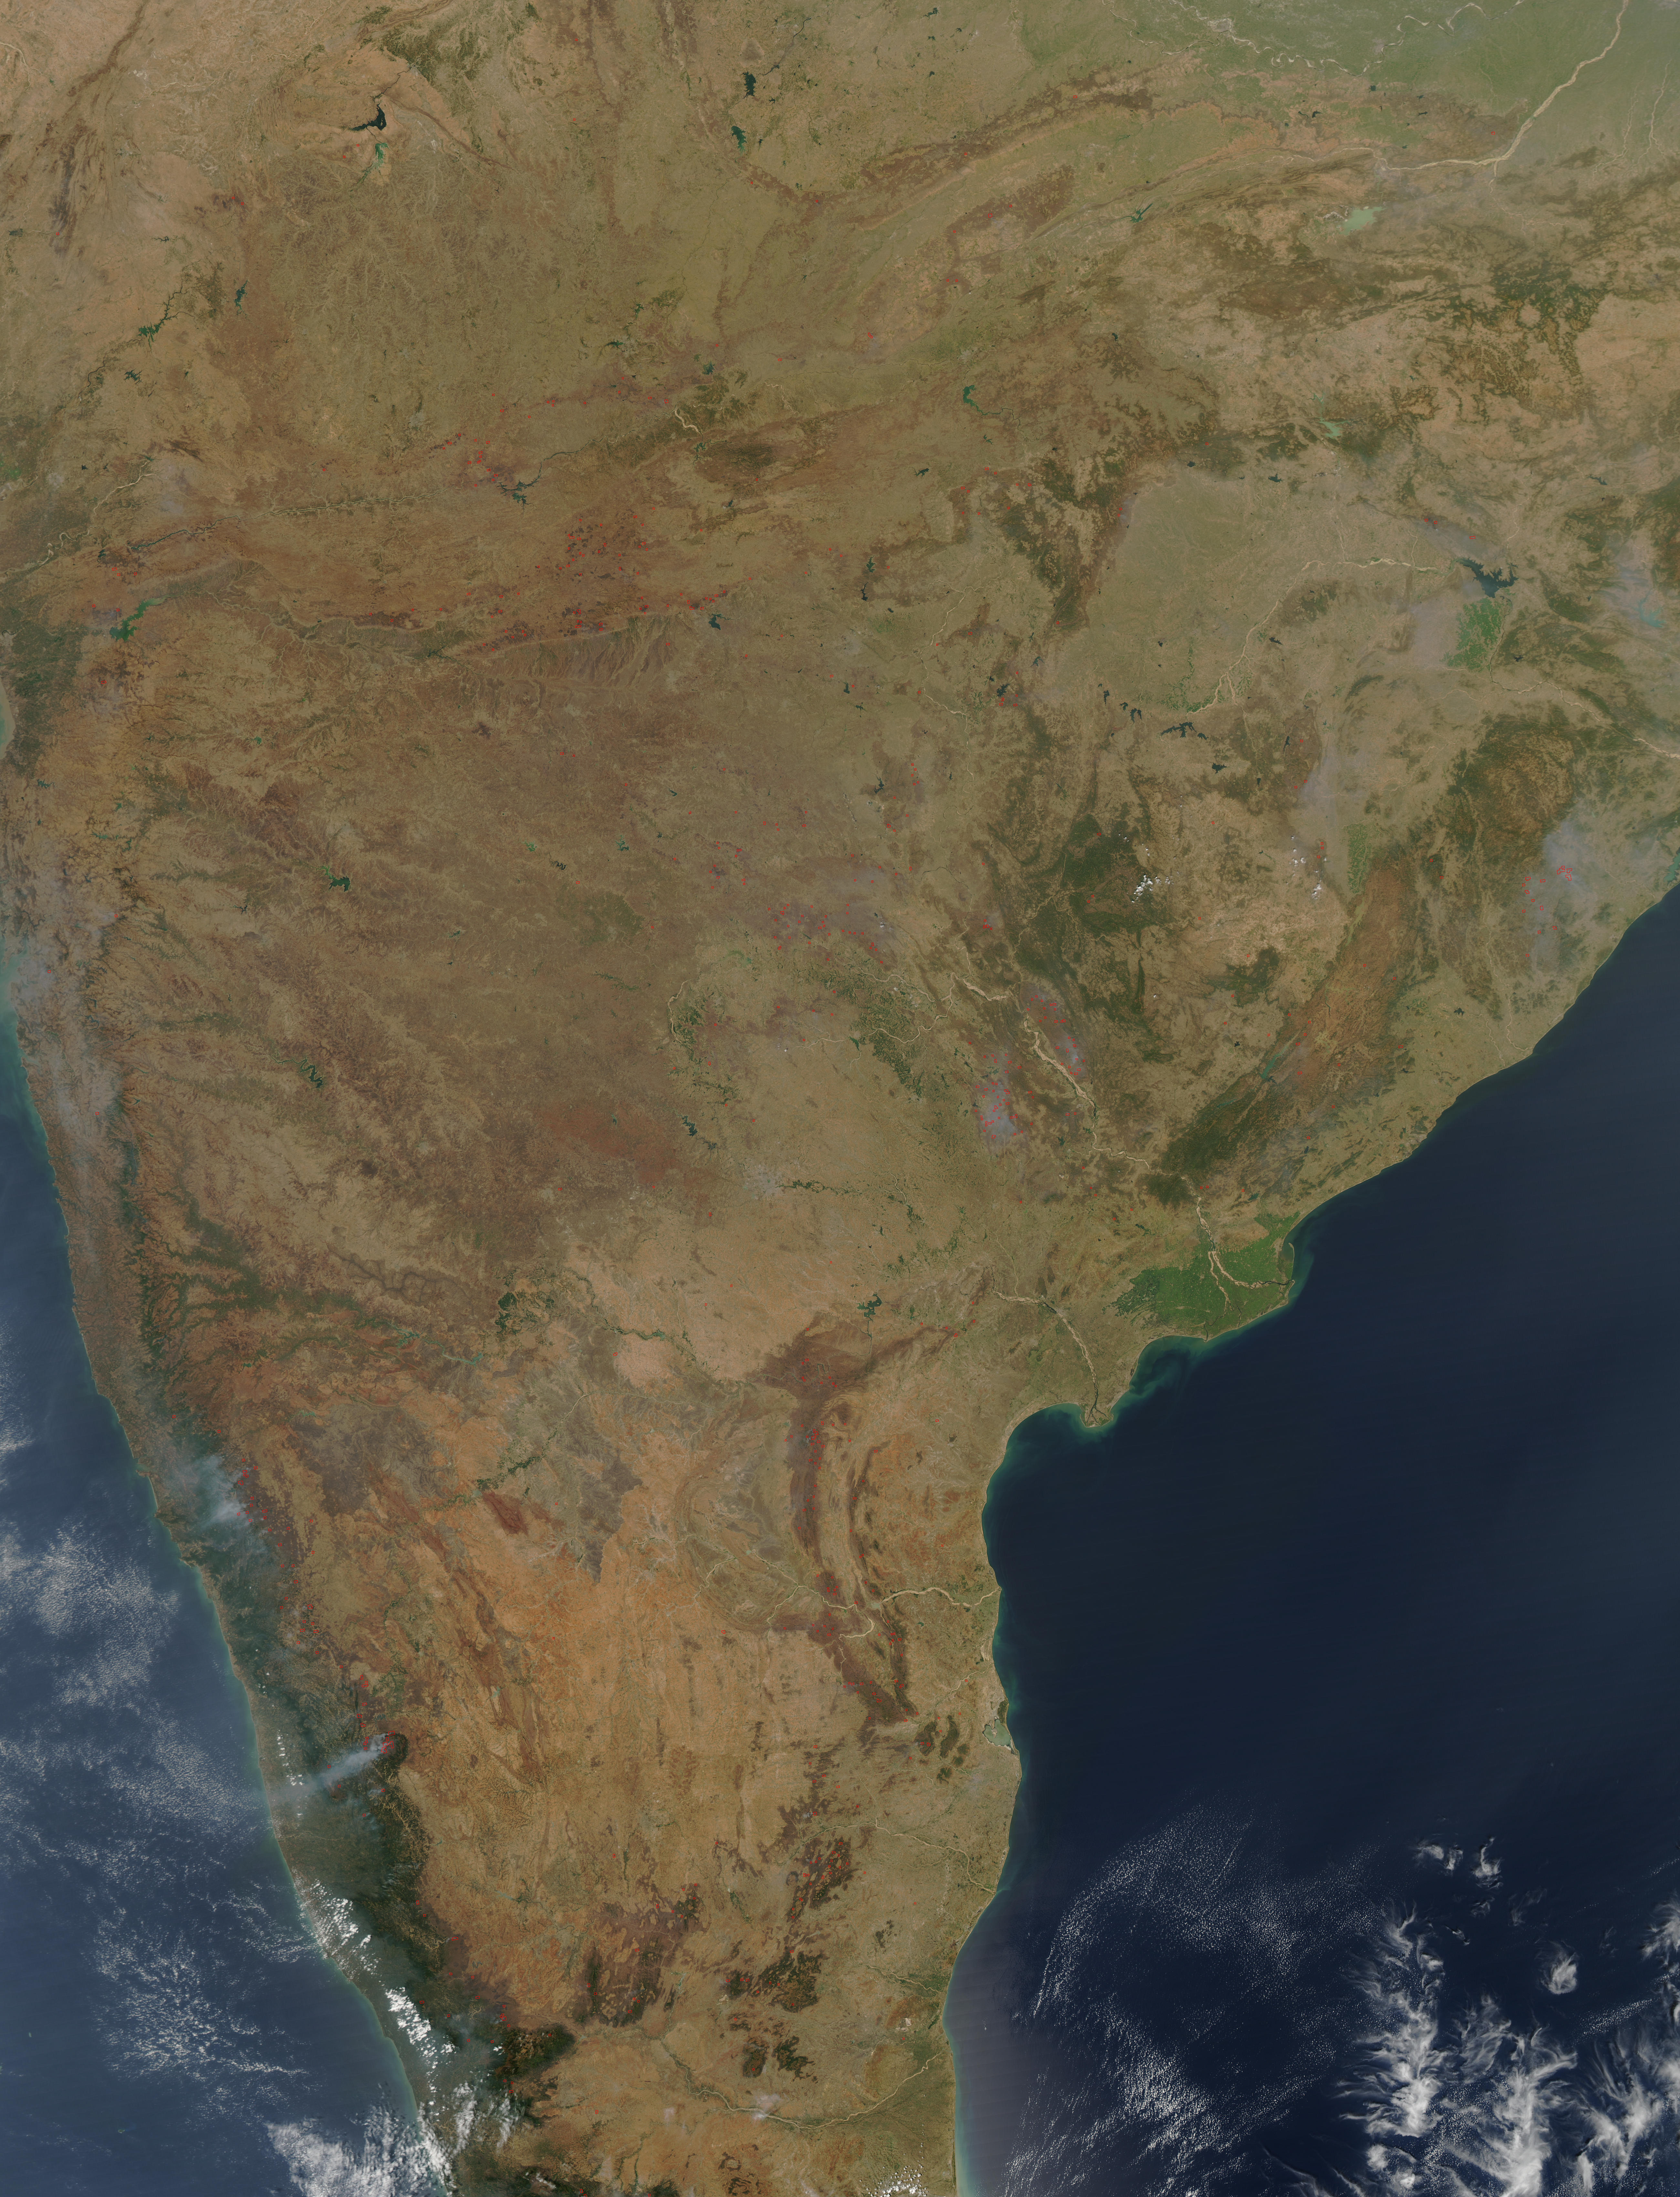 Fires in southern India